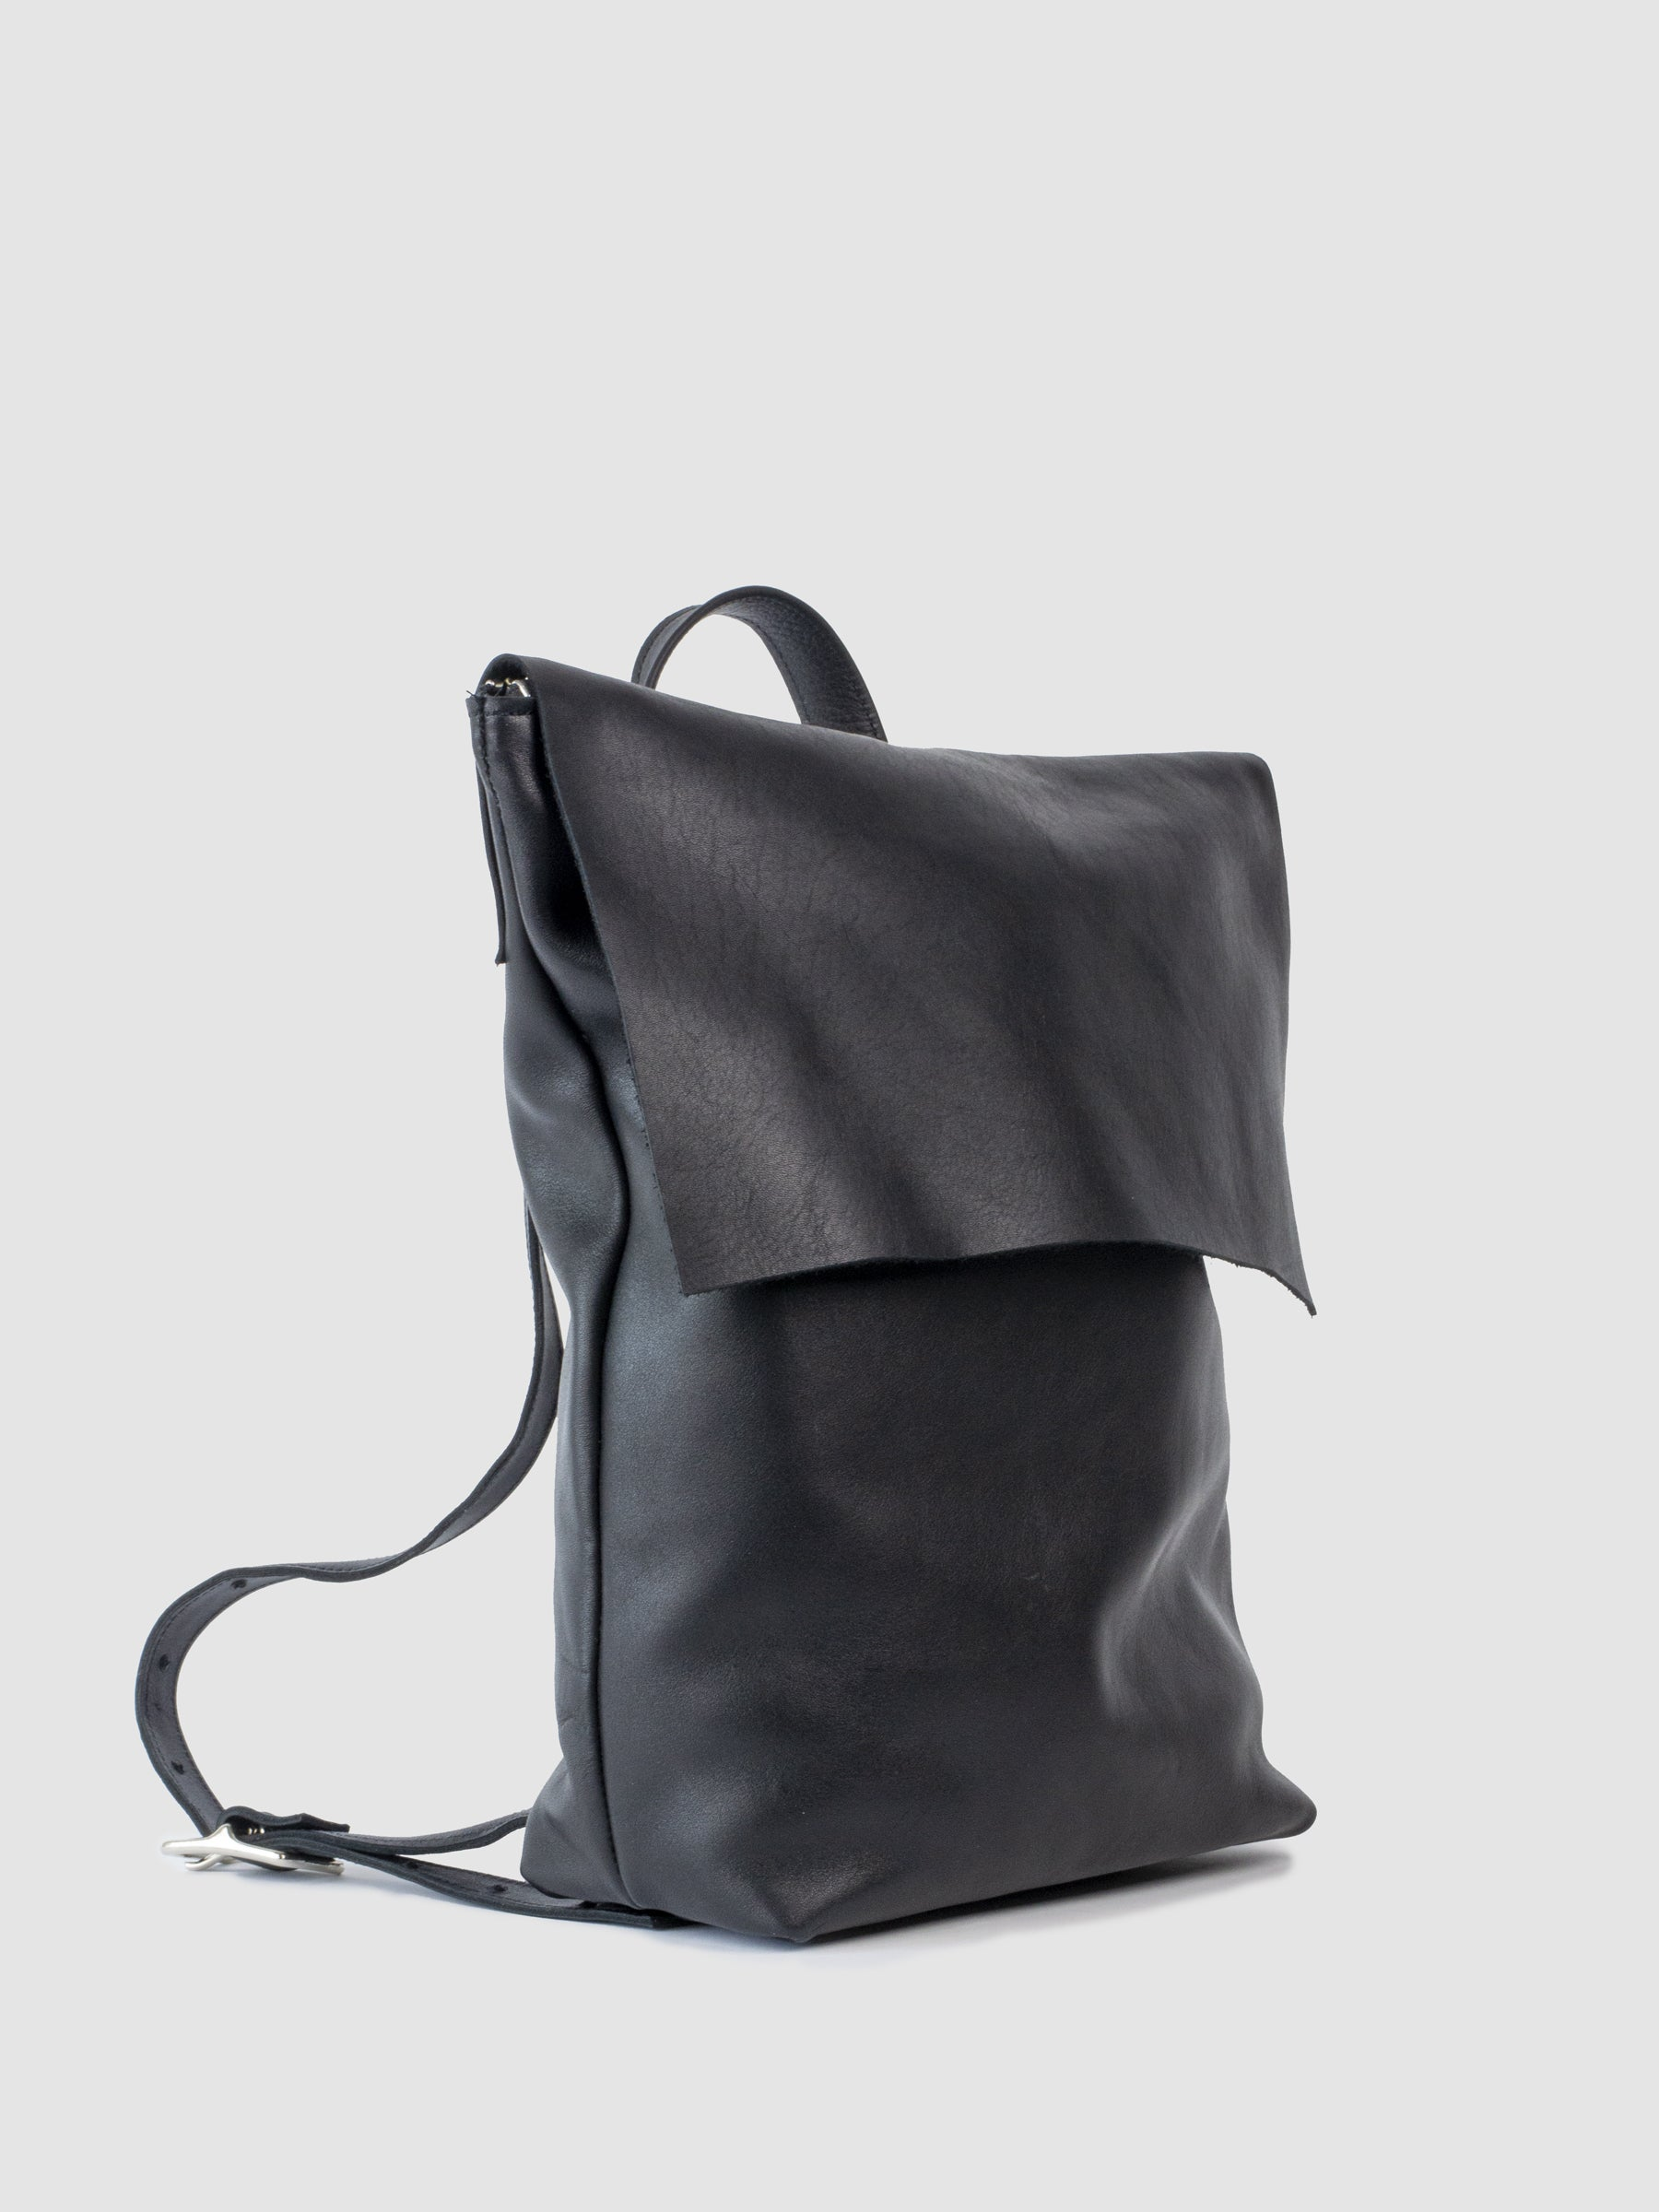 "The SONYA LEE Mary leather backpack. Ethically handmade in Canada using full grain leather. Lifetime warranty. Fits all the essentials and a 15"" laptop. Zipper closure. Adjustable leather shoulder straps. Lifetime warranty. Free shipping across North America."